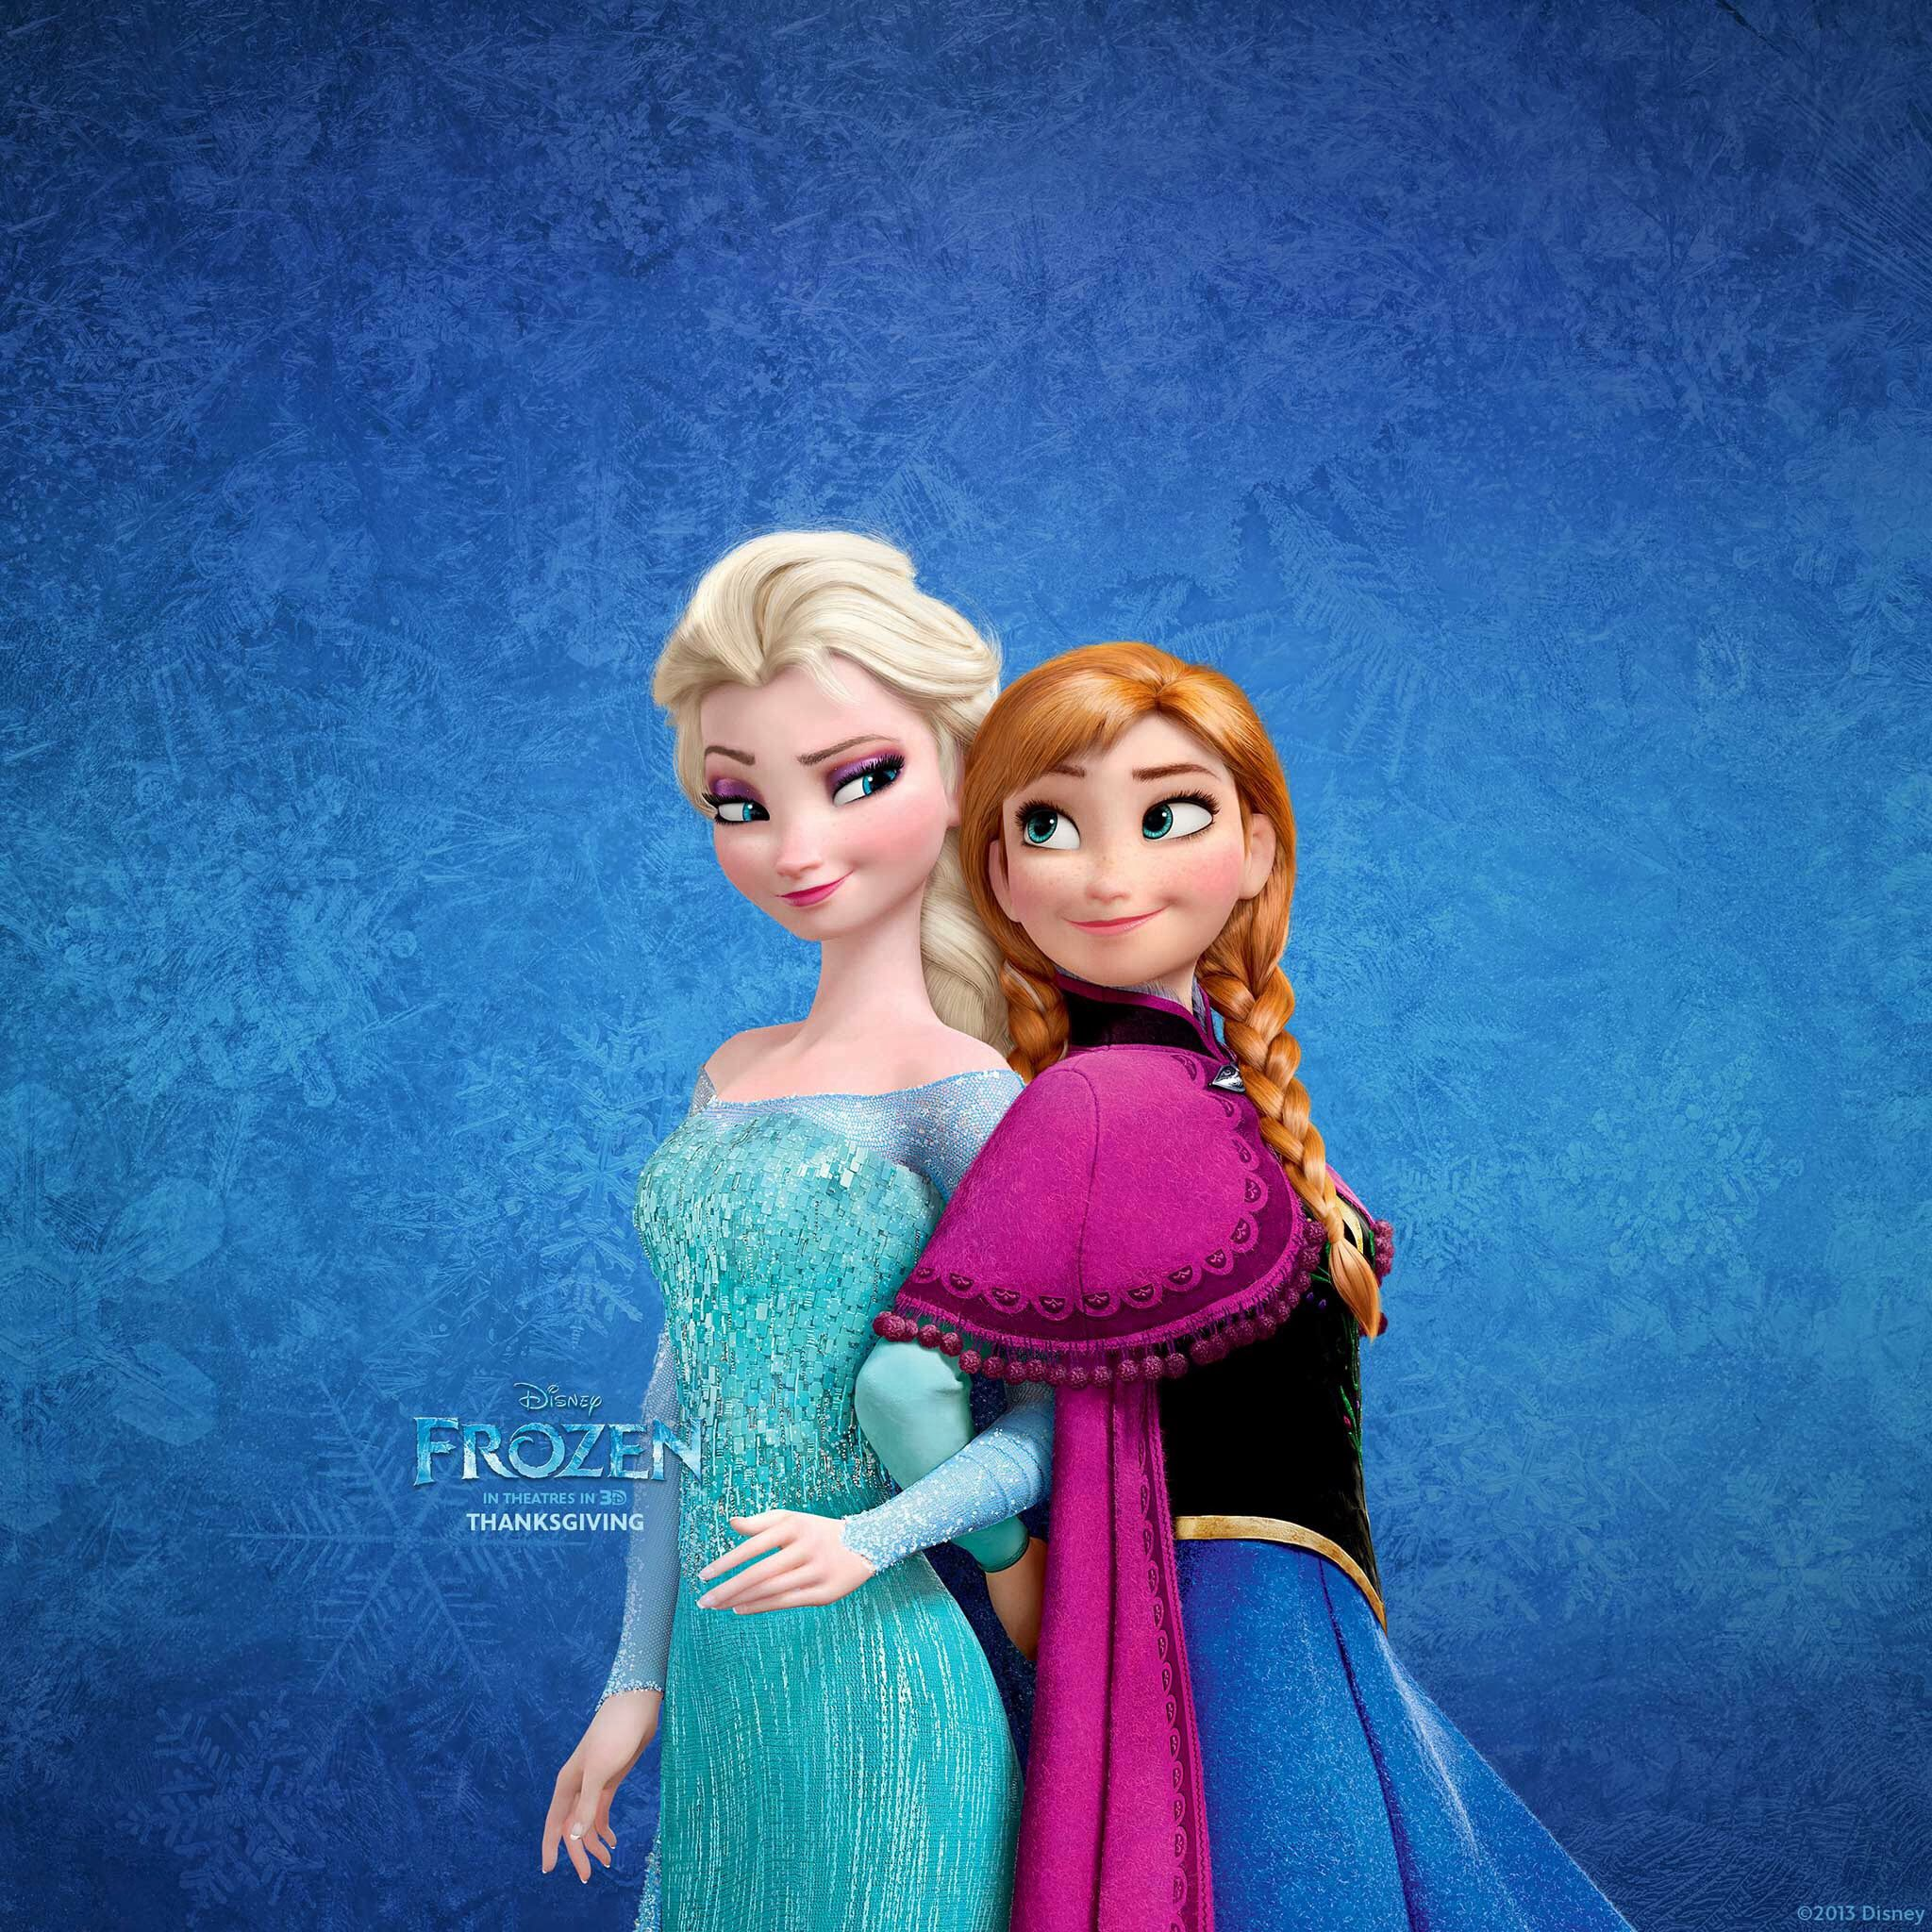 Queen elsa and her sister princess anna frozen anna elsa snow queen elsa in frozen wallpapers hd wallpapers voltagebd Images